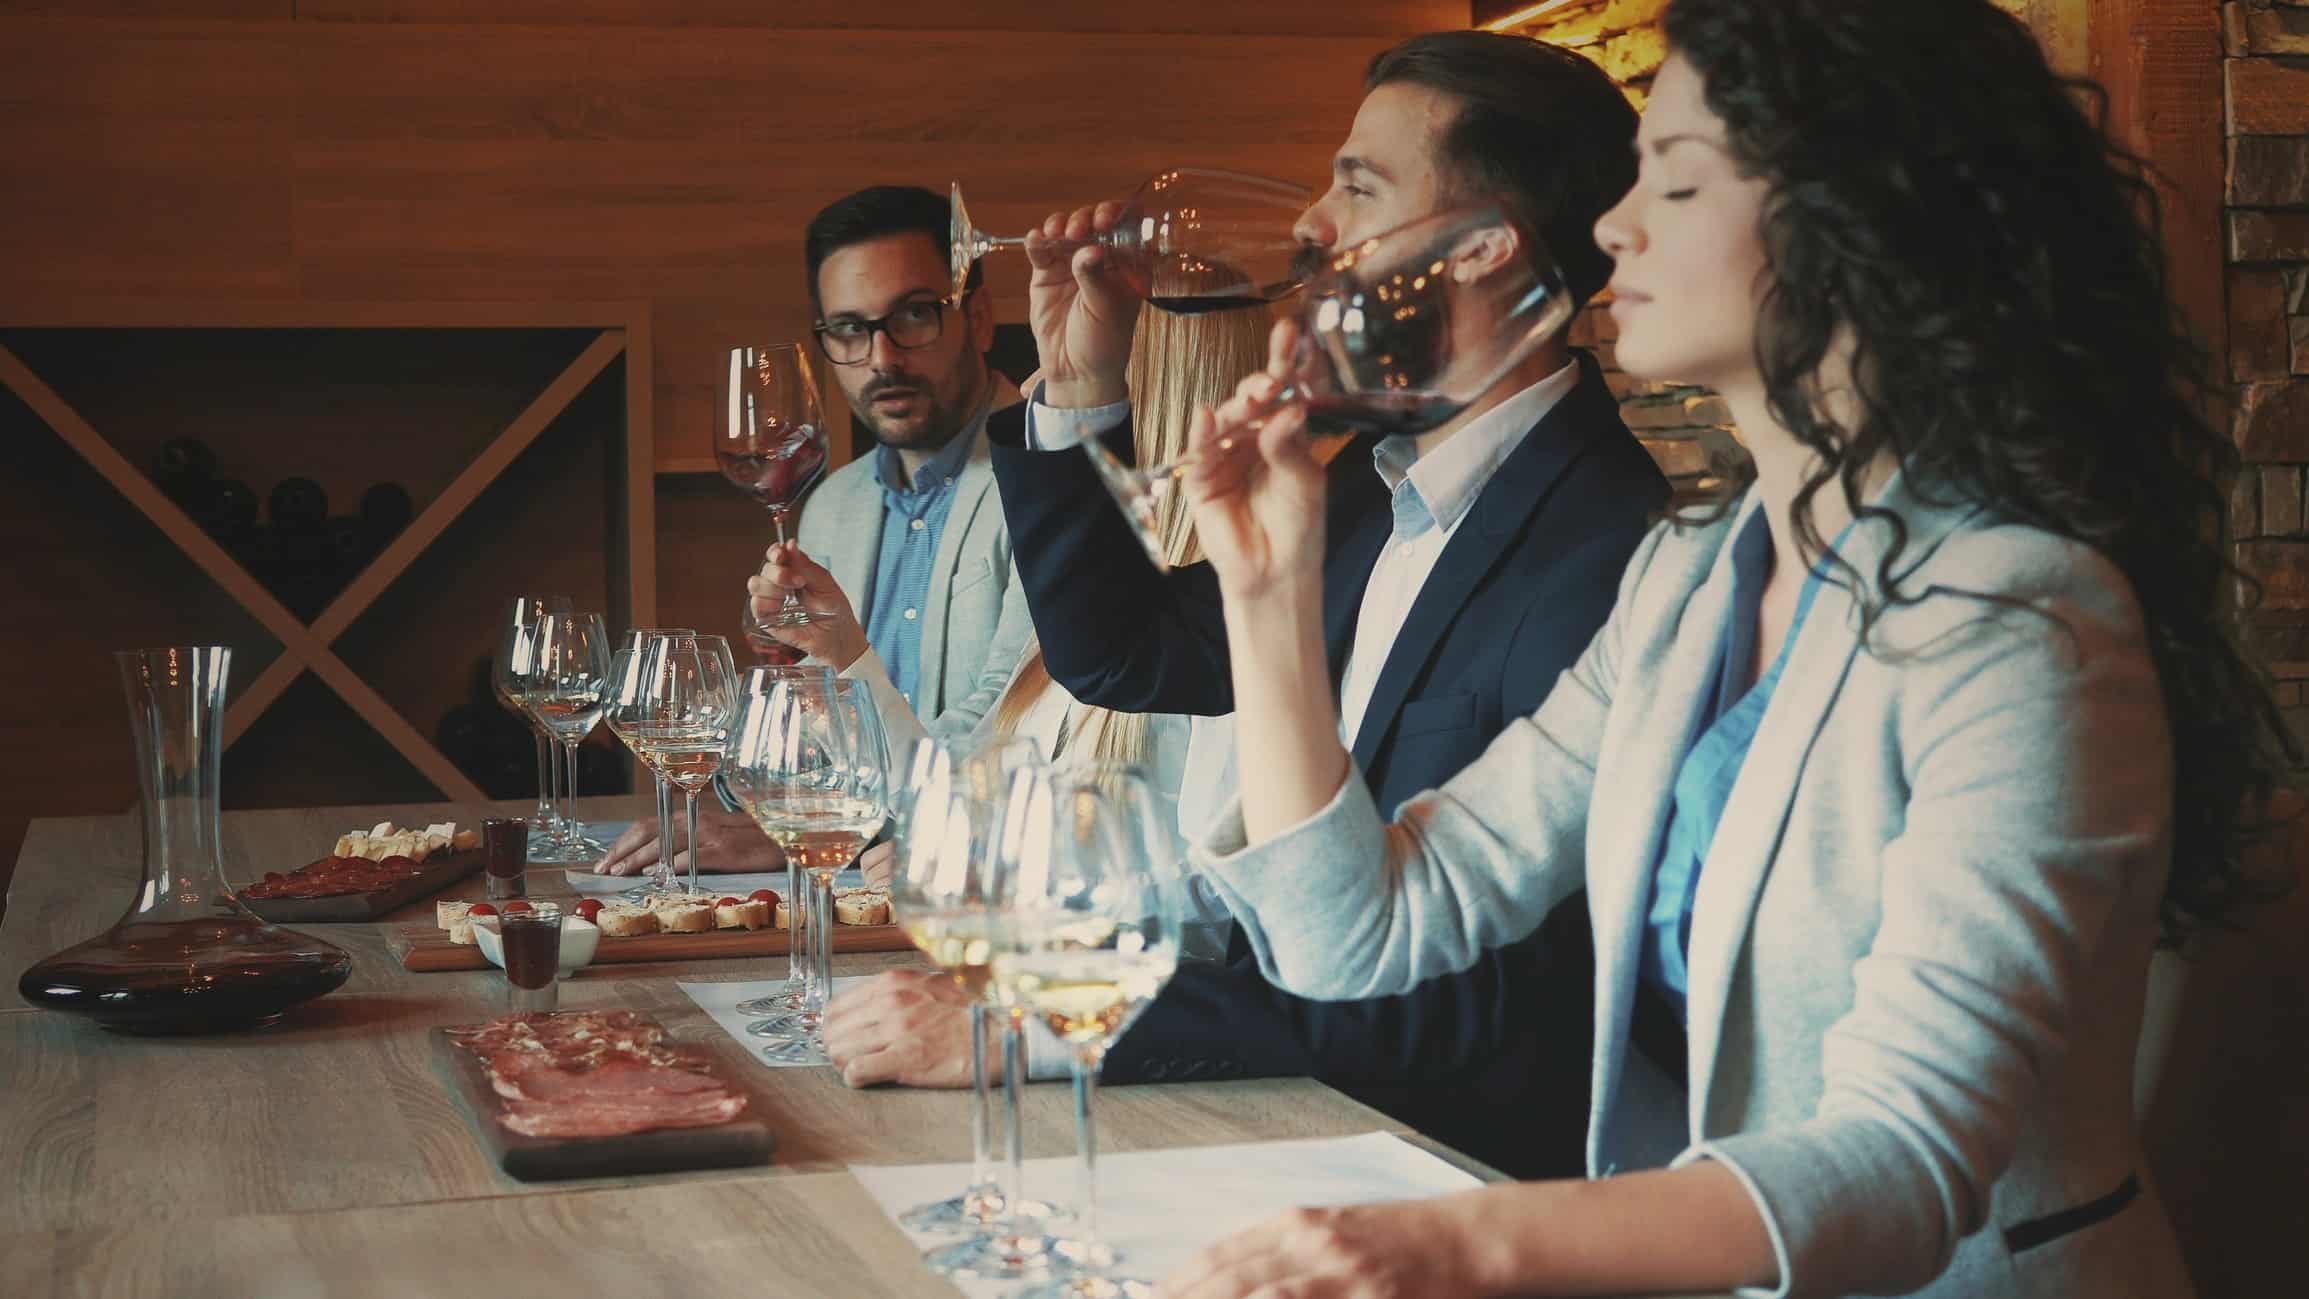 Woman and 2 men conducting a wine tasting